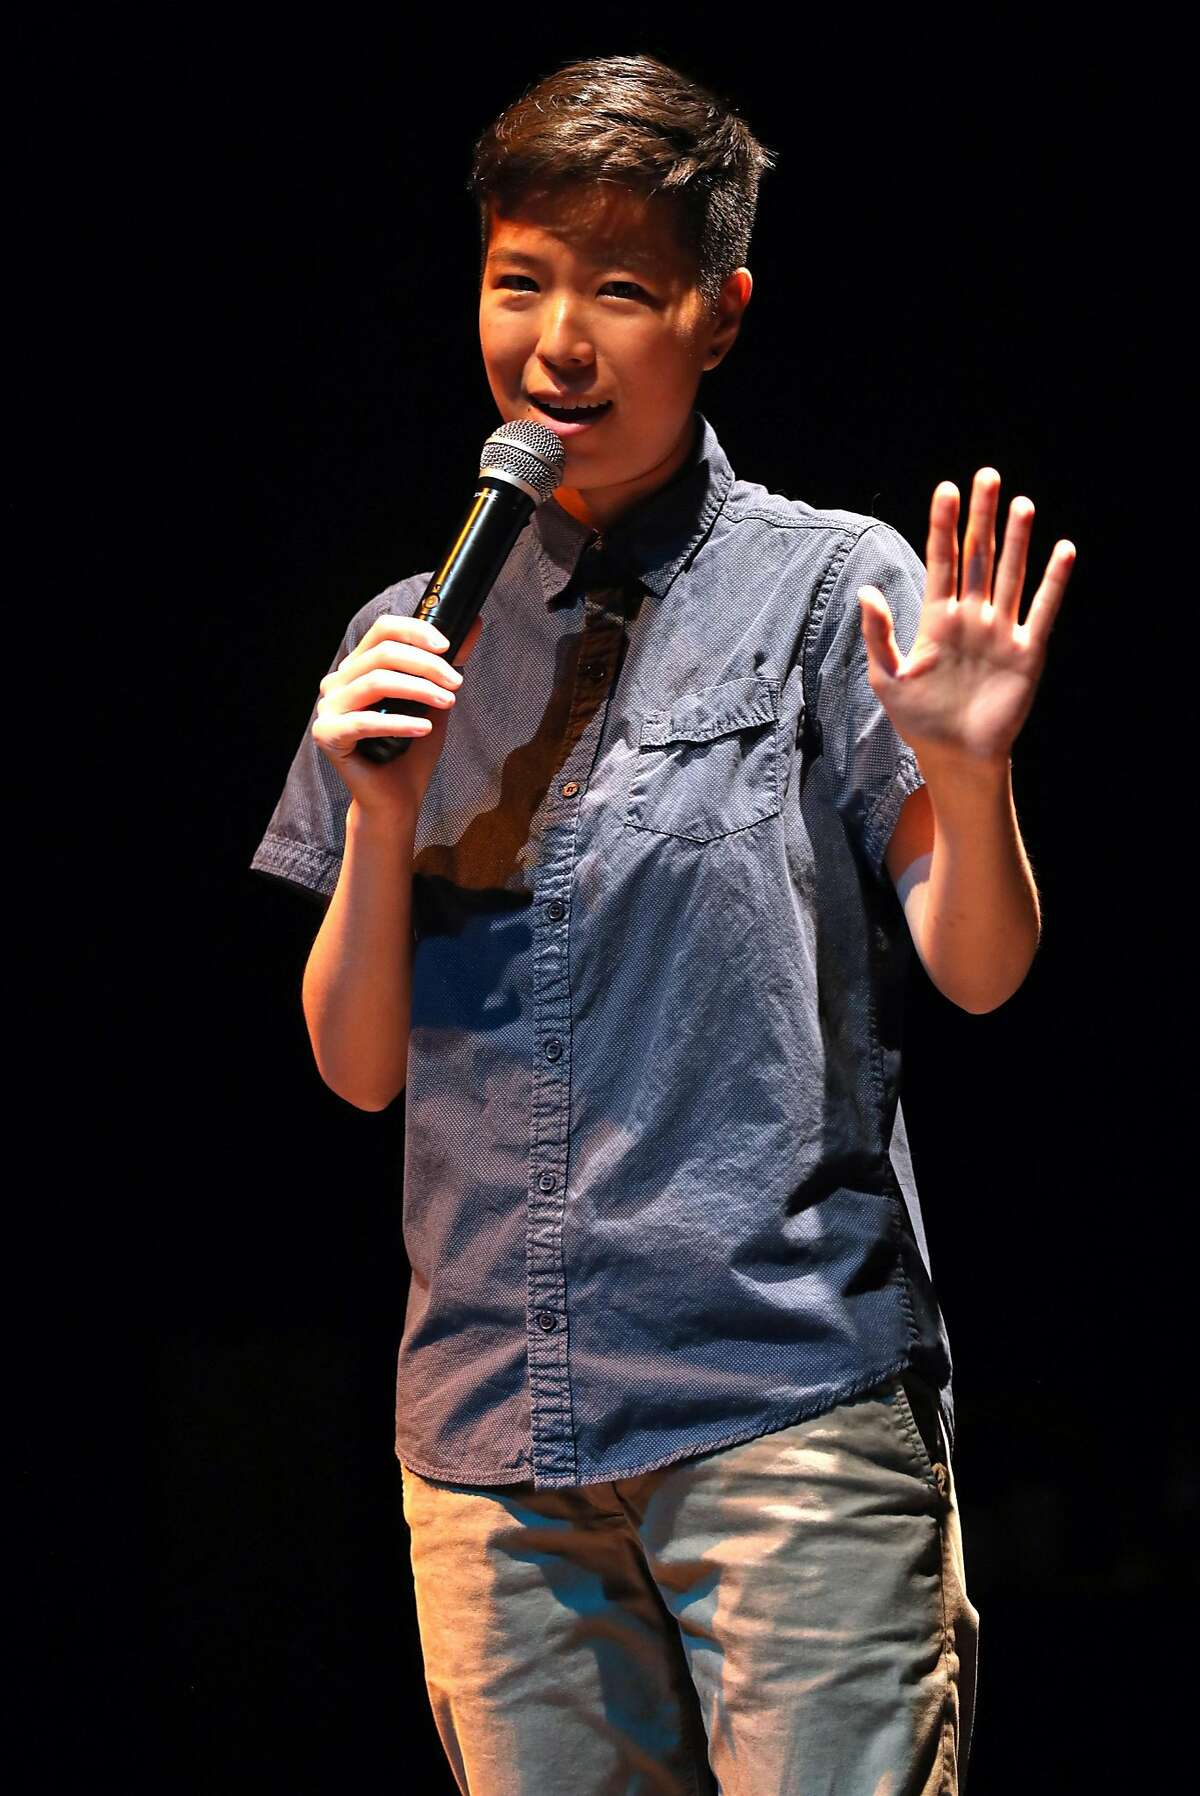 Irene Tu performs during Tourettes without Regrets at Oakland Metro in Oakland, Calif., on Thursday, October 5, 2017.